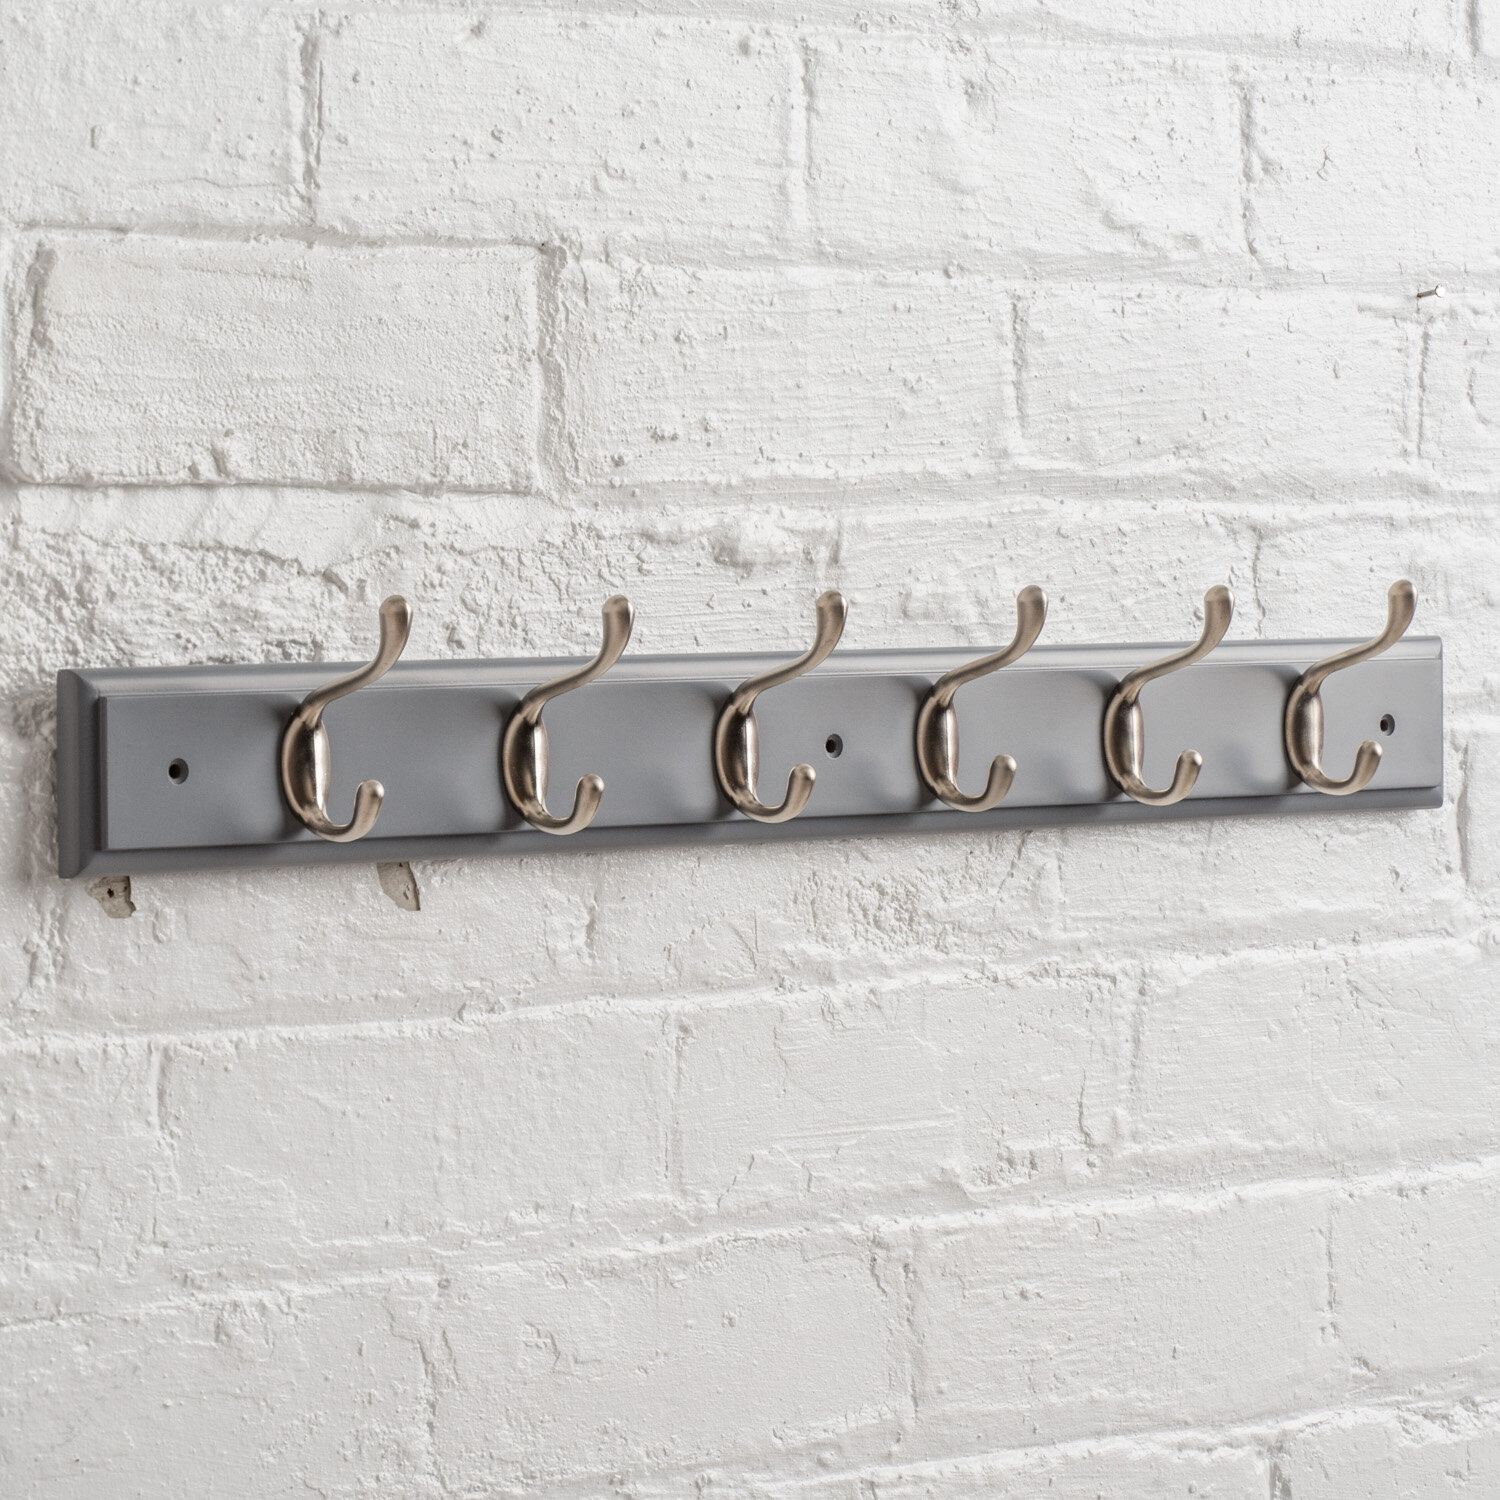 andersson wall gulin by mount with nils coat karl contemporary prod product rack metal hooks ponoq mounted